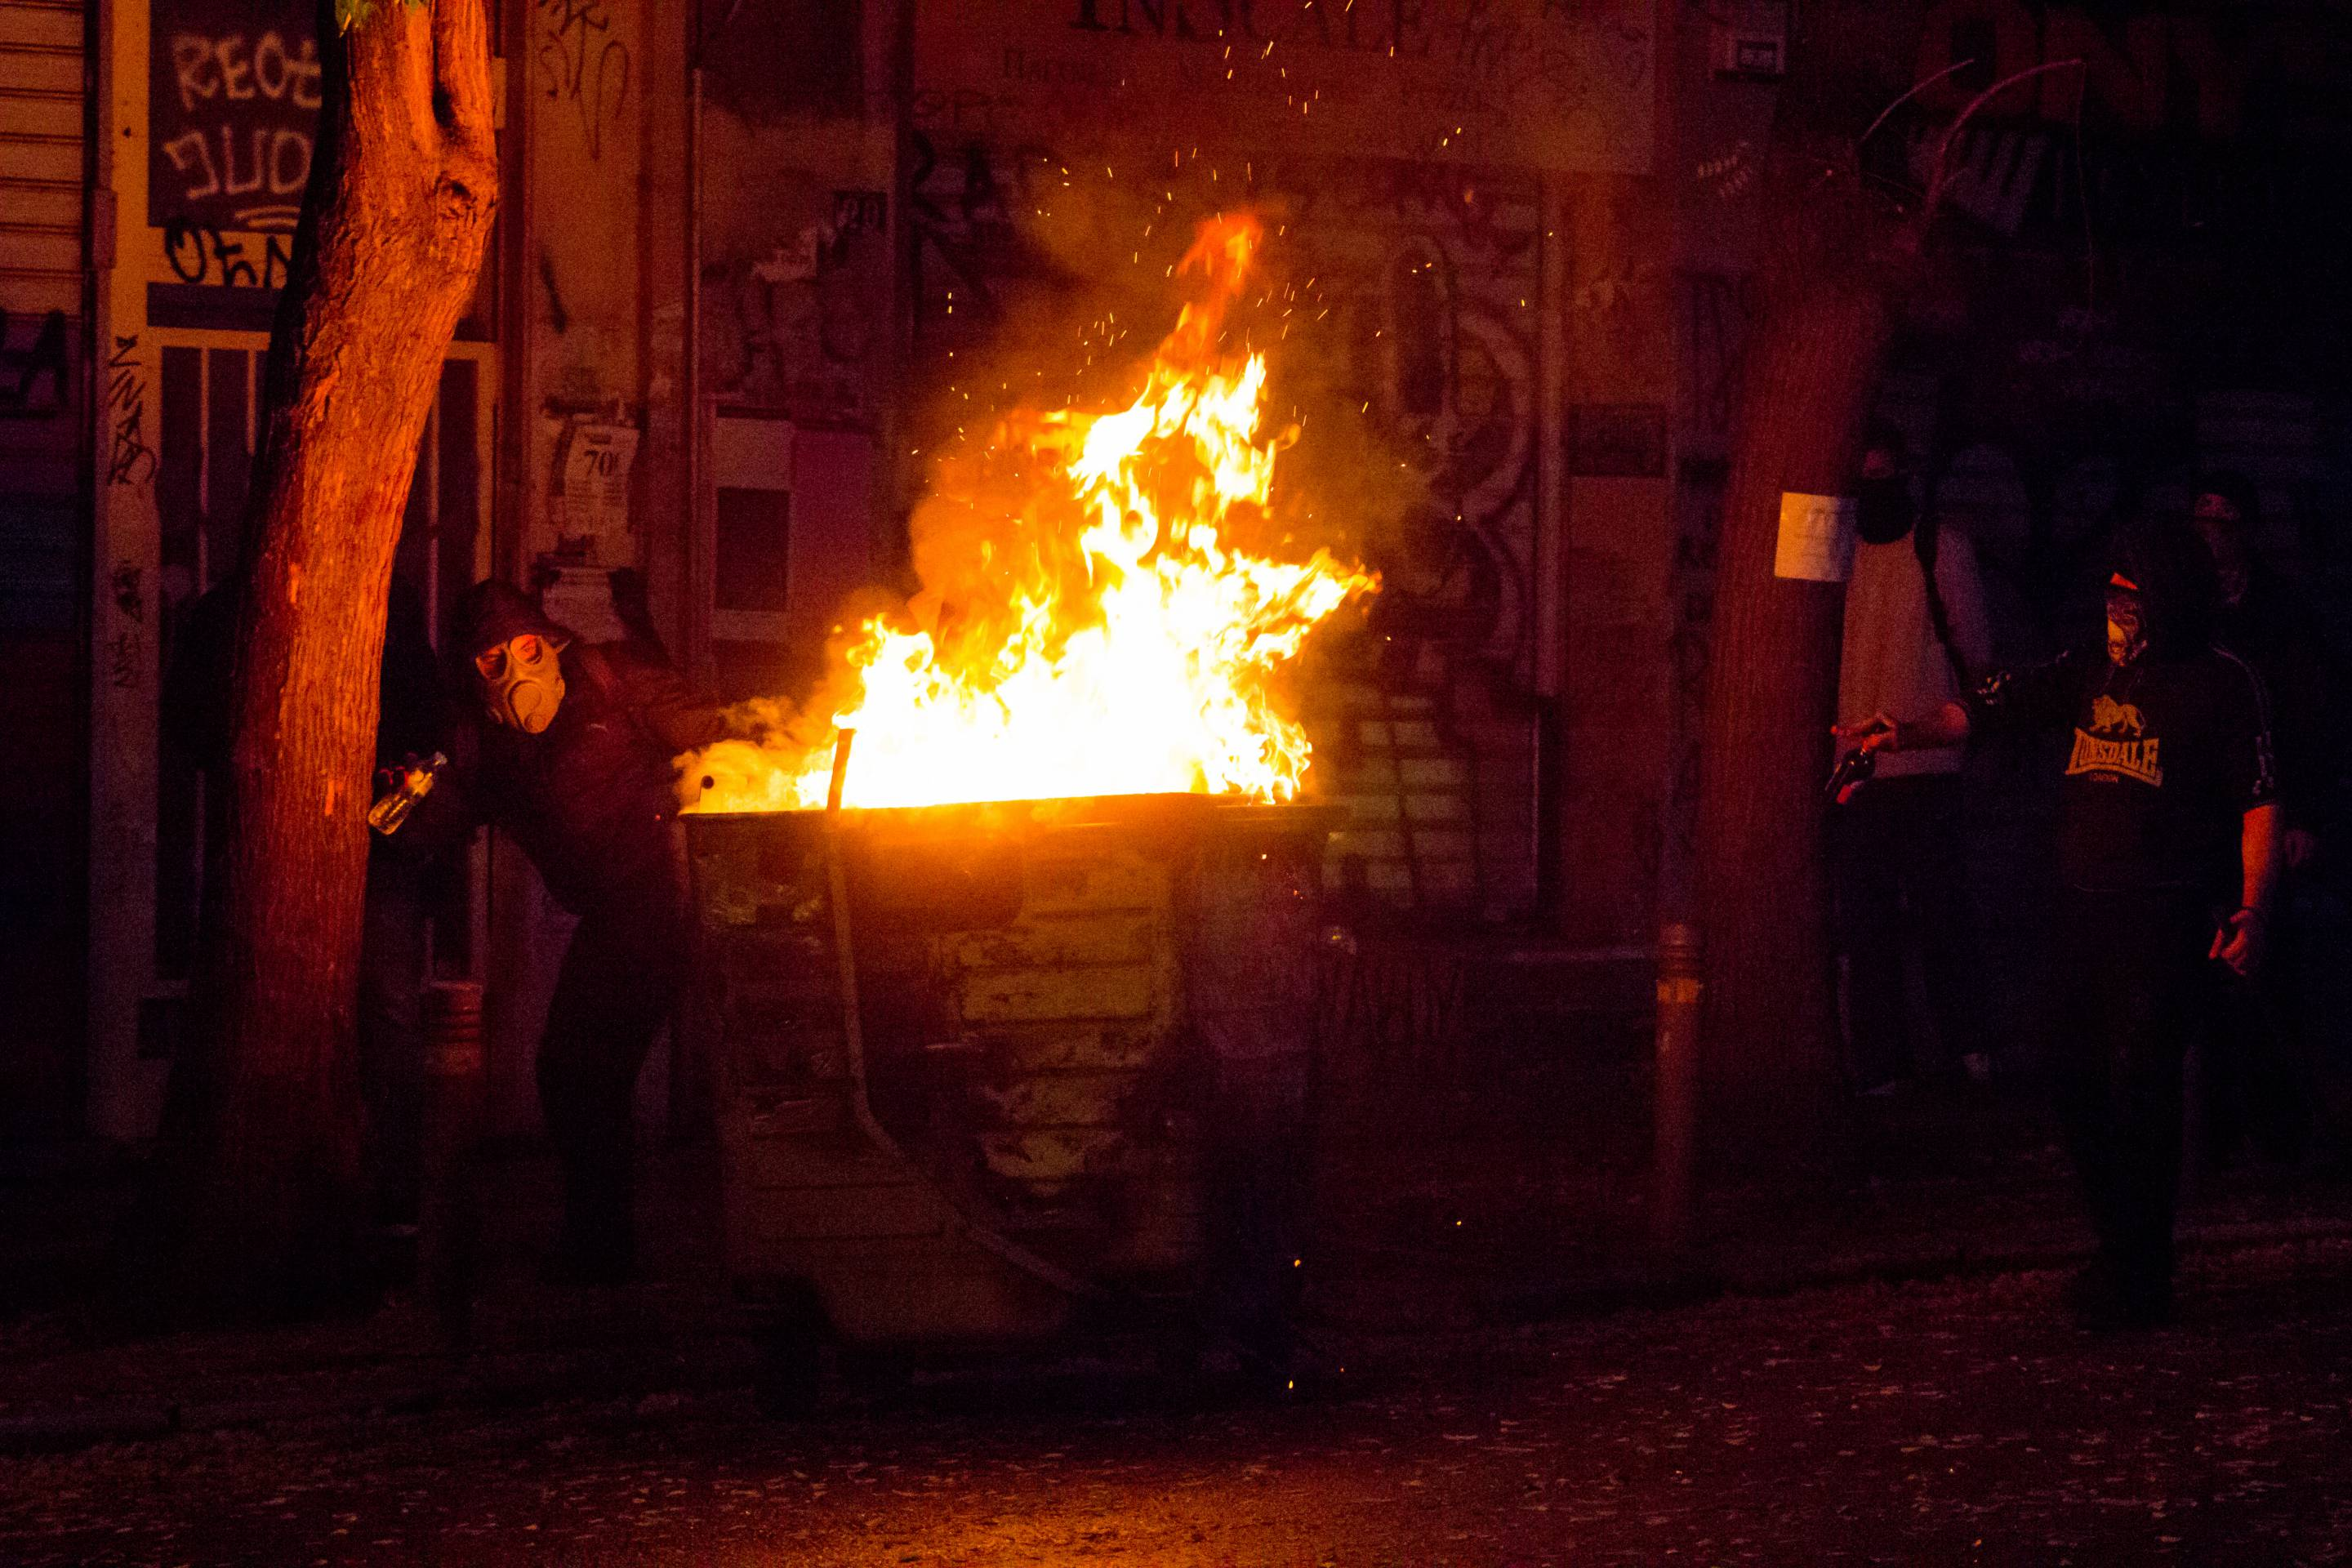 Rioters put a dumpster on fire to protect from tear gas